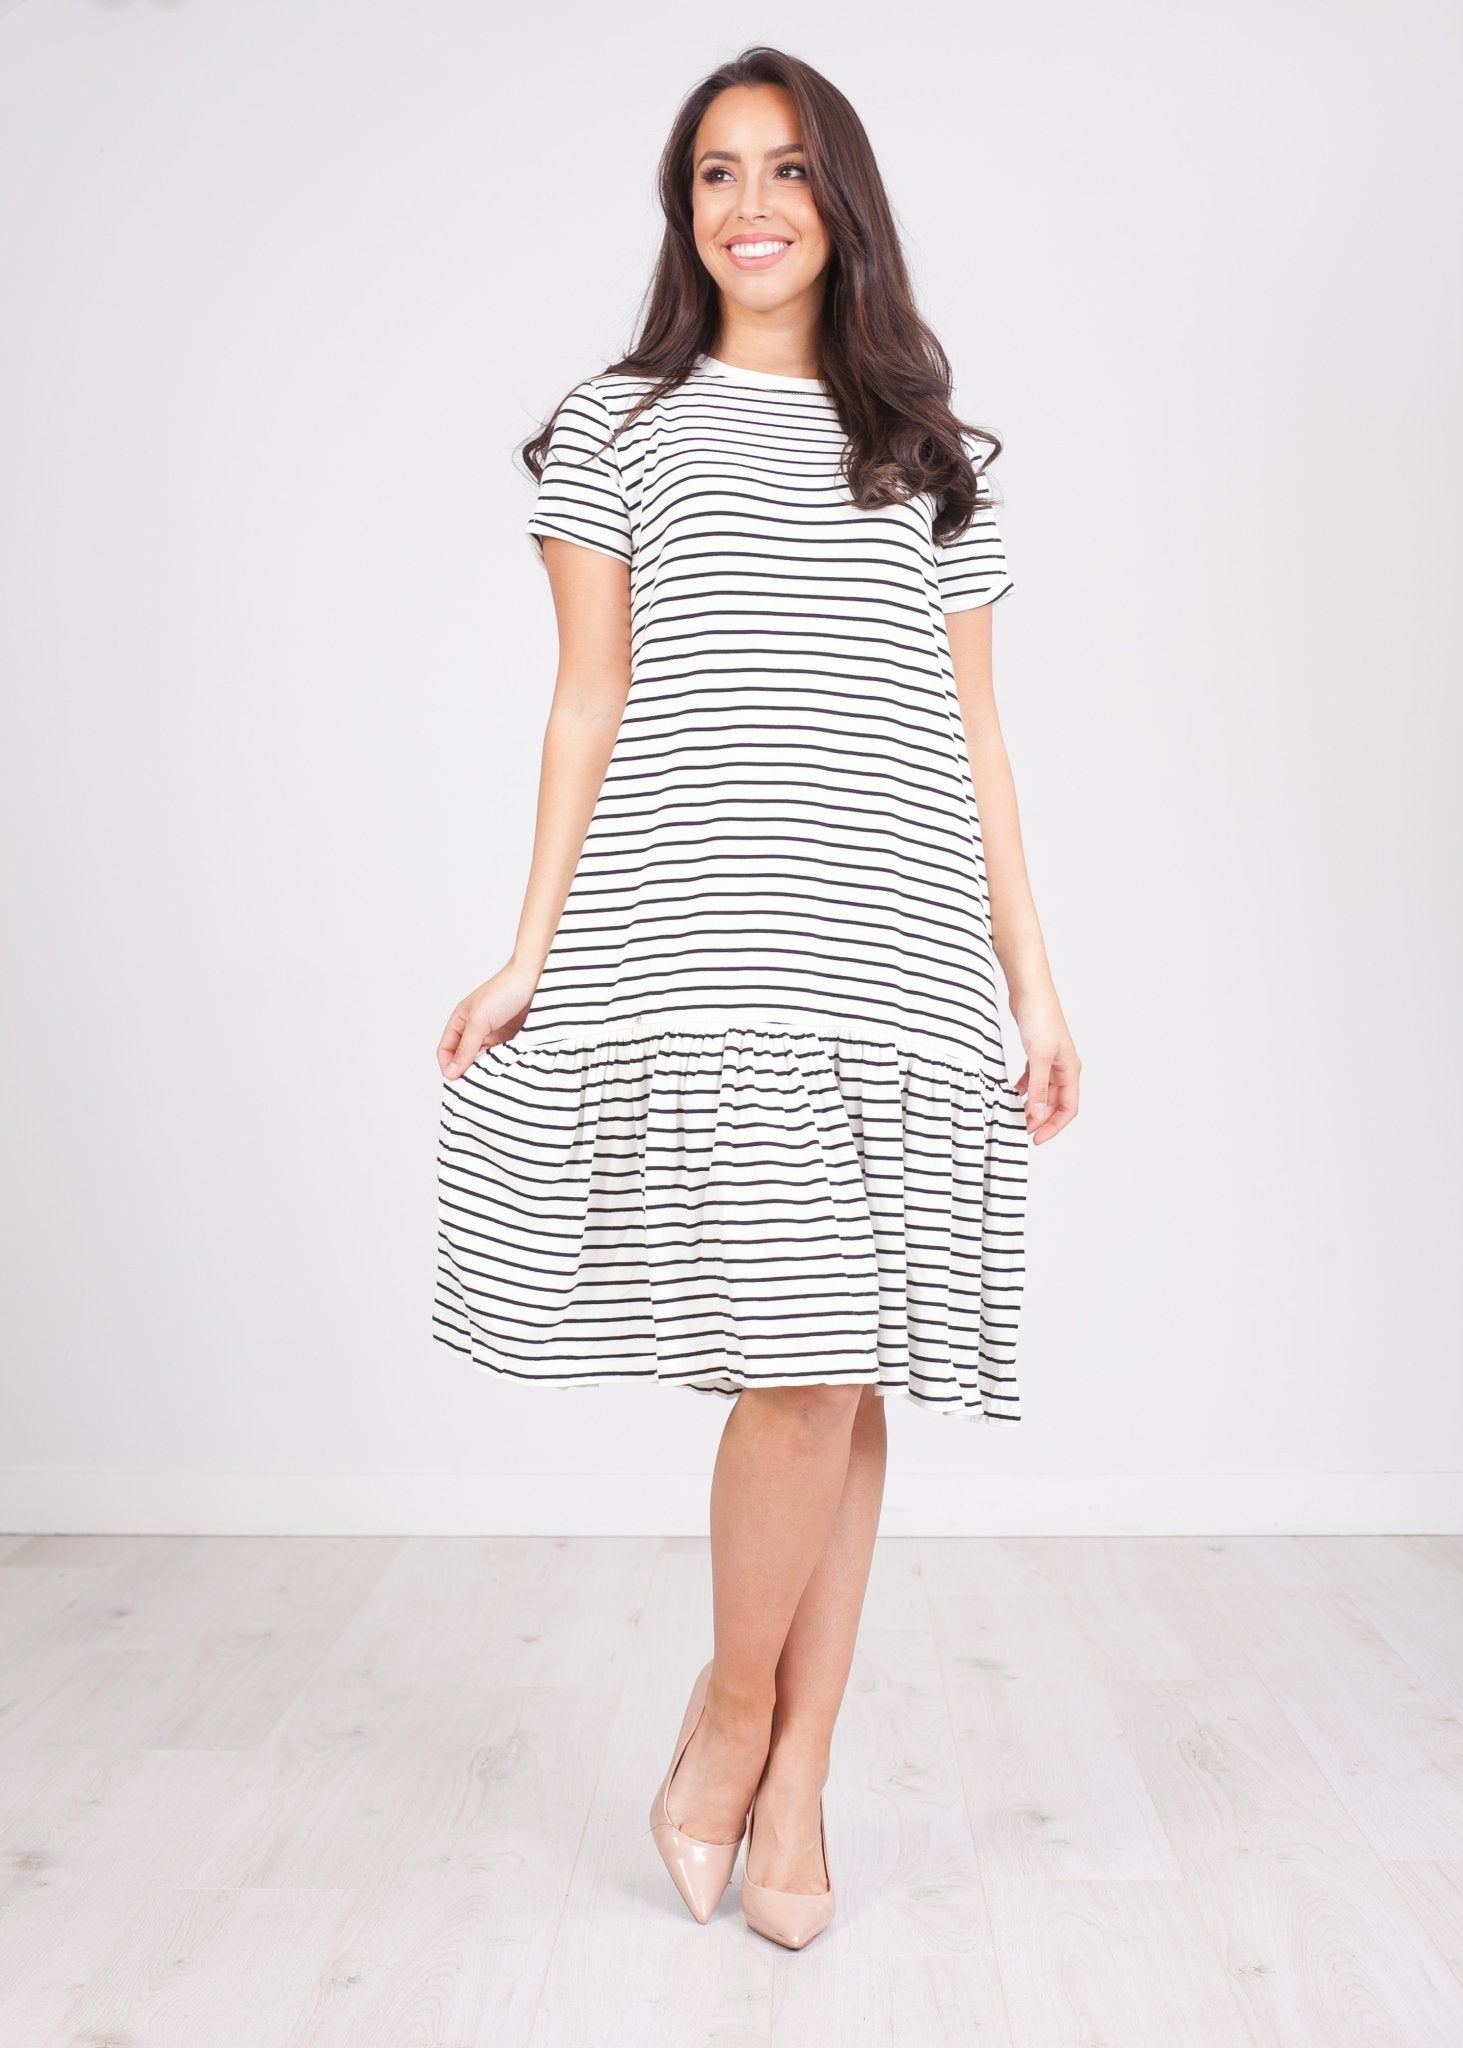 Sissy Black & White Stripe Dress - The Walk in Wardrobe